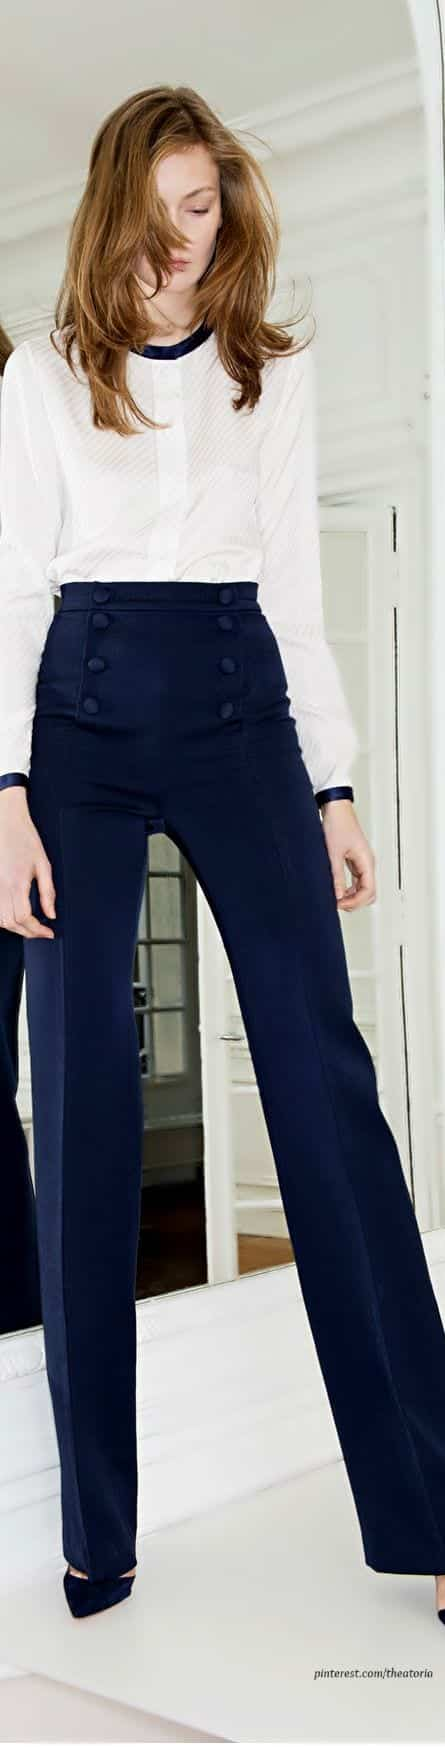 sailor-pants-style Sailor Pant Outfits-17 Ways to Wear Sailor Pants Fashionably